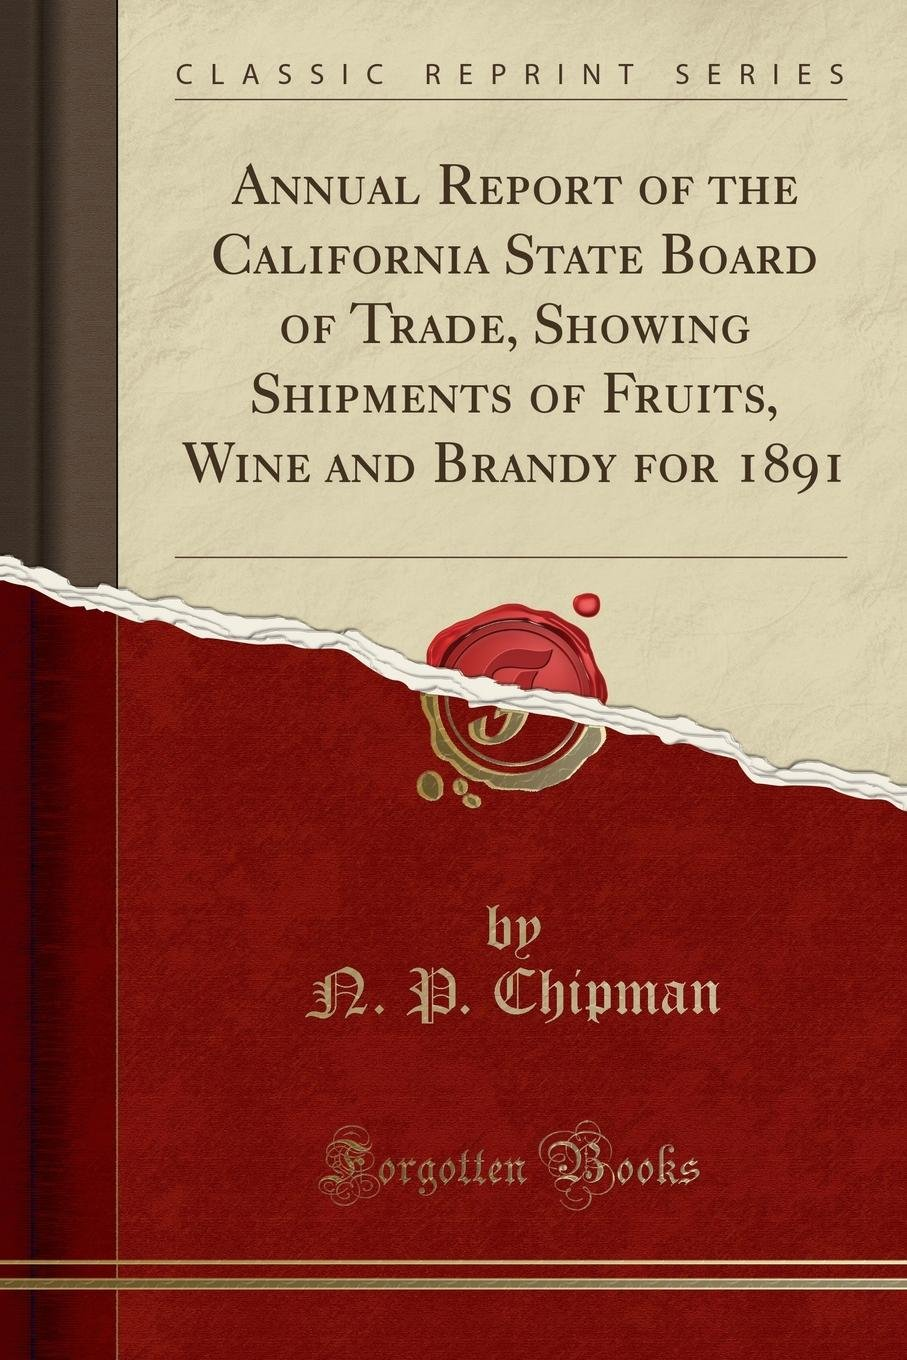 Annual Report of the California State Board of Trade, Showing Shipments of Fruits, Wine and Brandy for 1891 (Classic Reprint) pdf epub